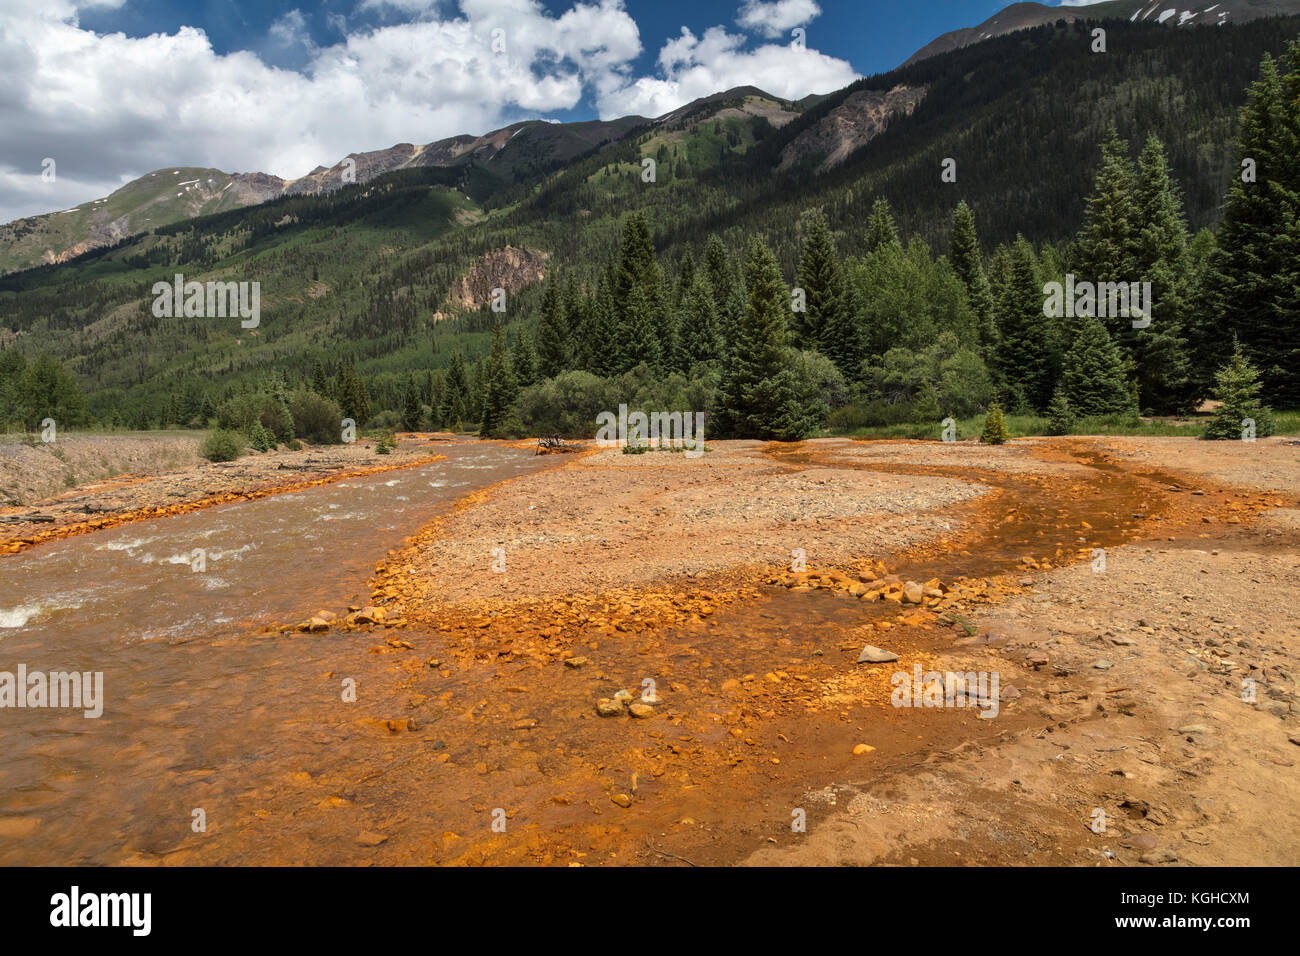 Mining Pollutants Poison the Animas River near Ouray, CO - Stock Image